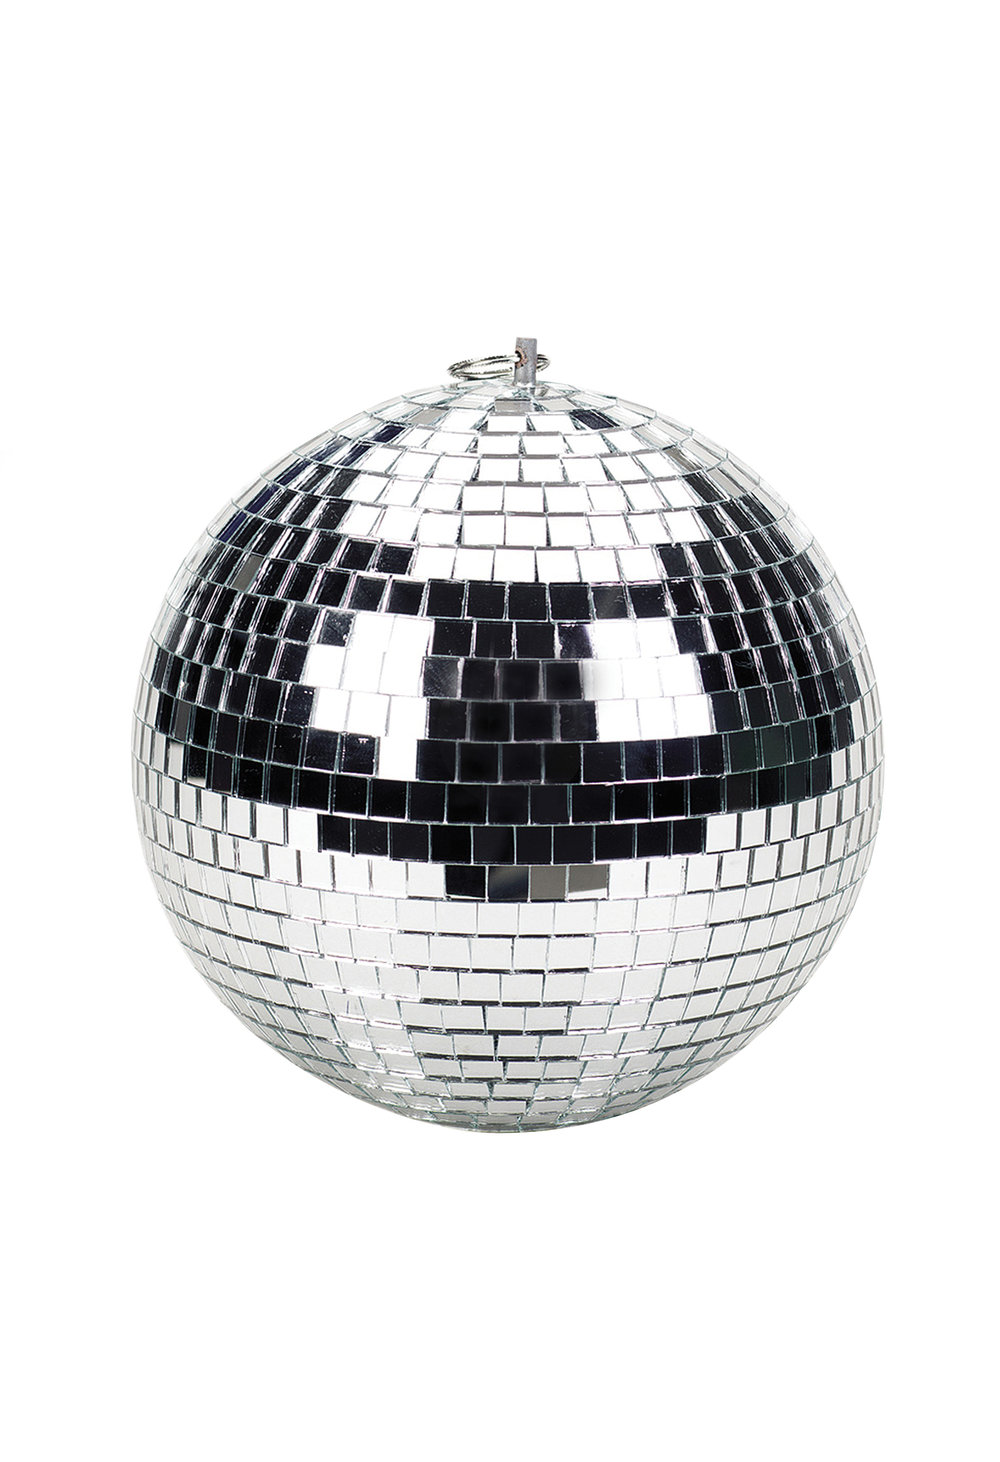 "MB4, MB8, MB12, MB16, MB20  MIRROR BALL  -  4"" ,  8"" ,  12"" ,  16"" ,  20"" (Special order only) Mirror Ball"